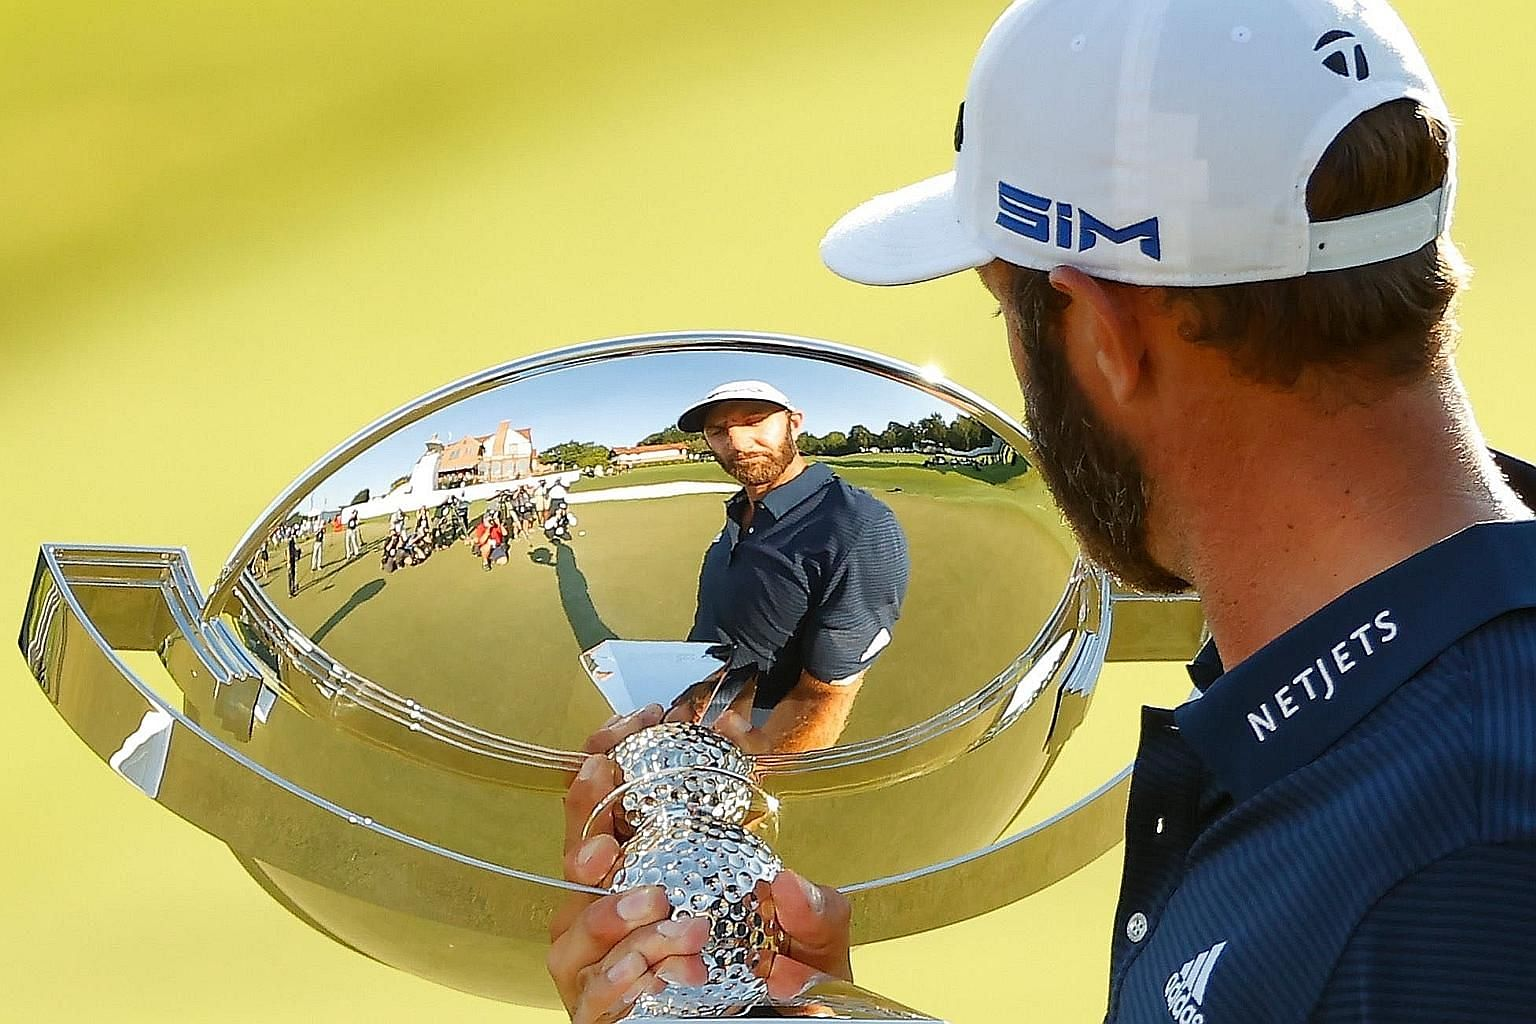 World No. 1 Dustin Johnson admiring the elusive FedExCup trophy after winning the Tour Championship by three shots on Monday. PHOTO: AGENCE FRANCE-PRESSE